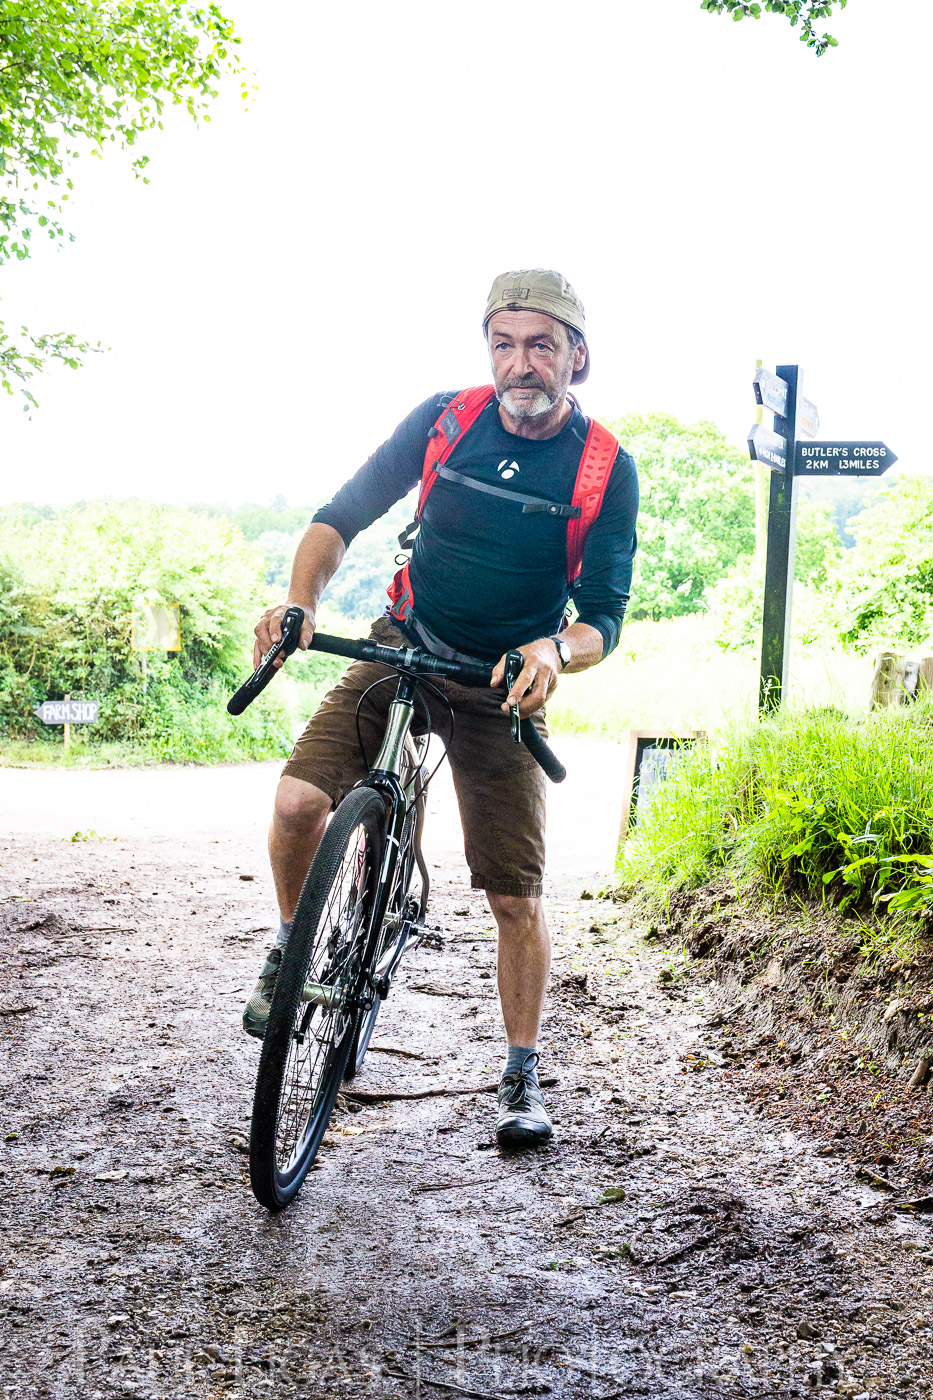 Cycling sports photographer herefordshire 8391